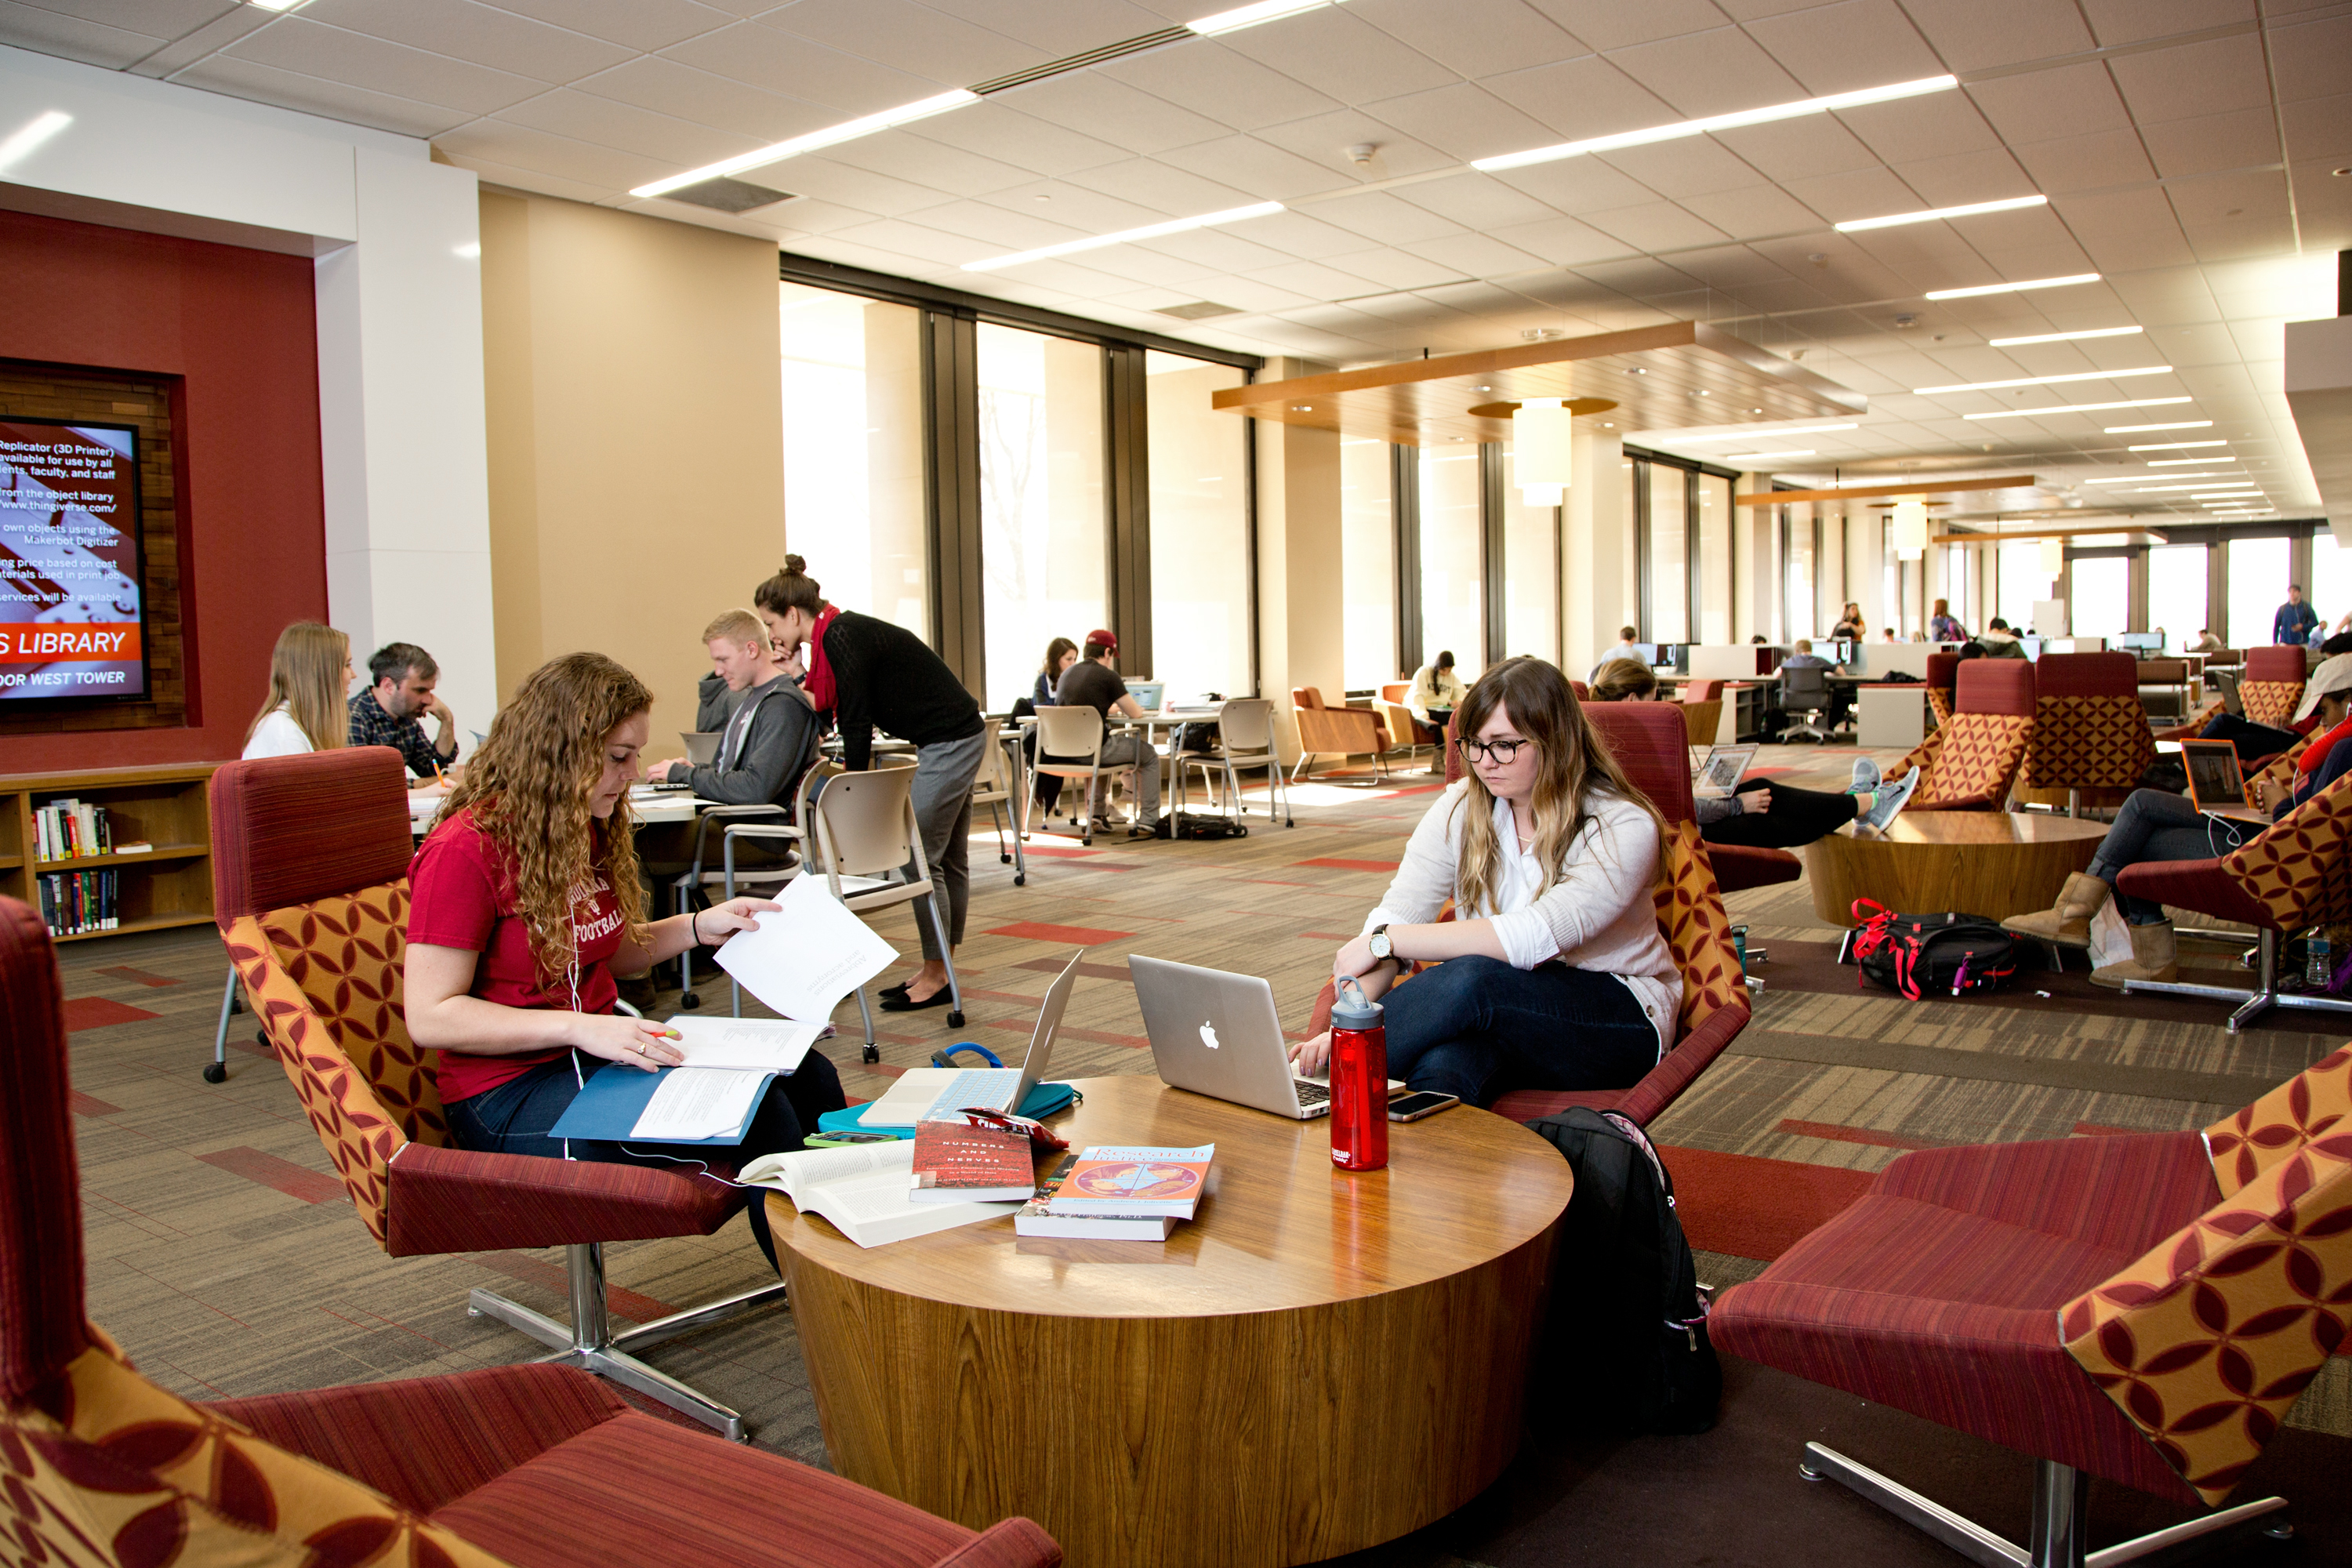 Wells Library Learning Commons